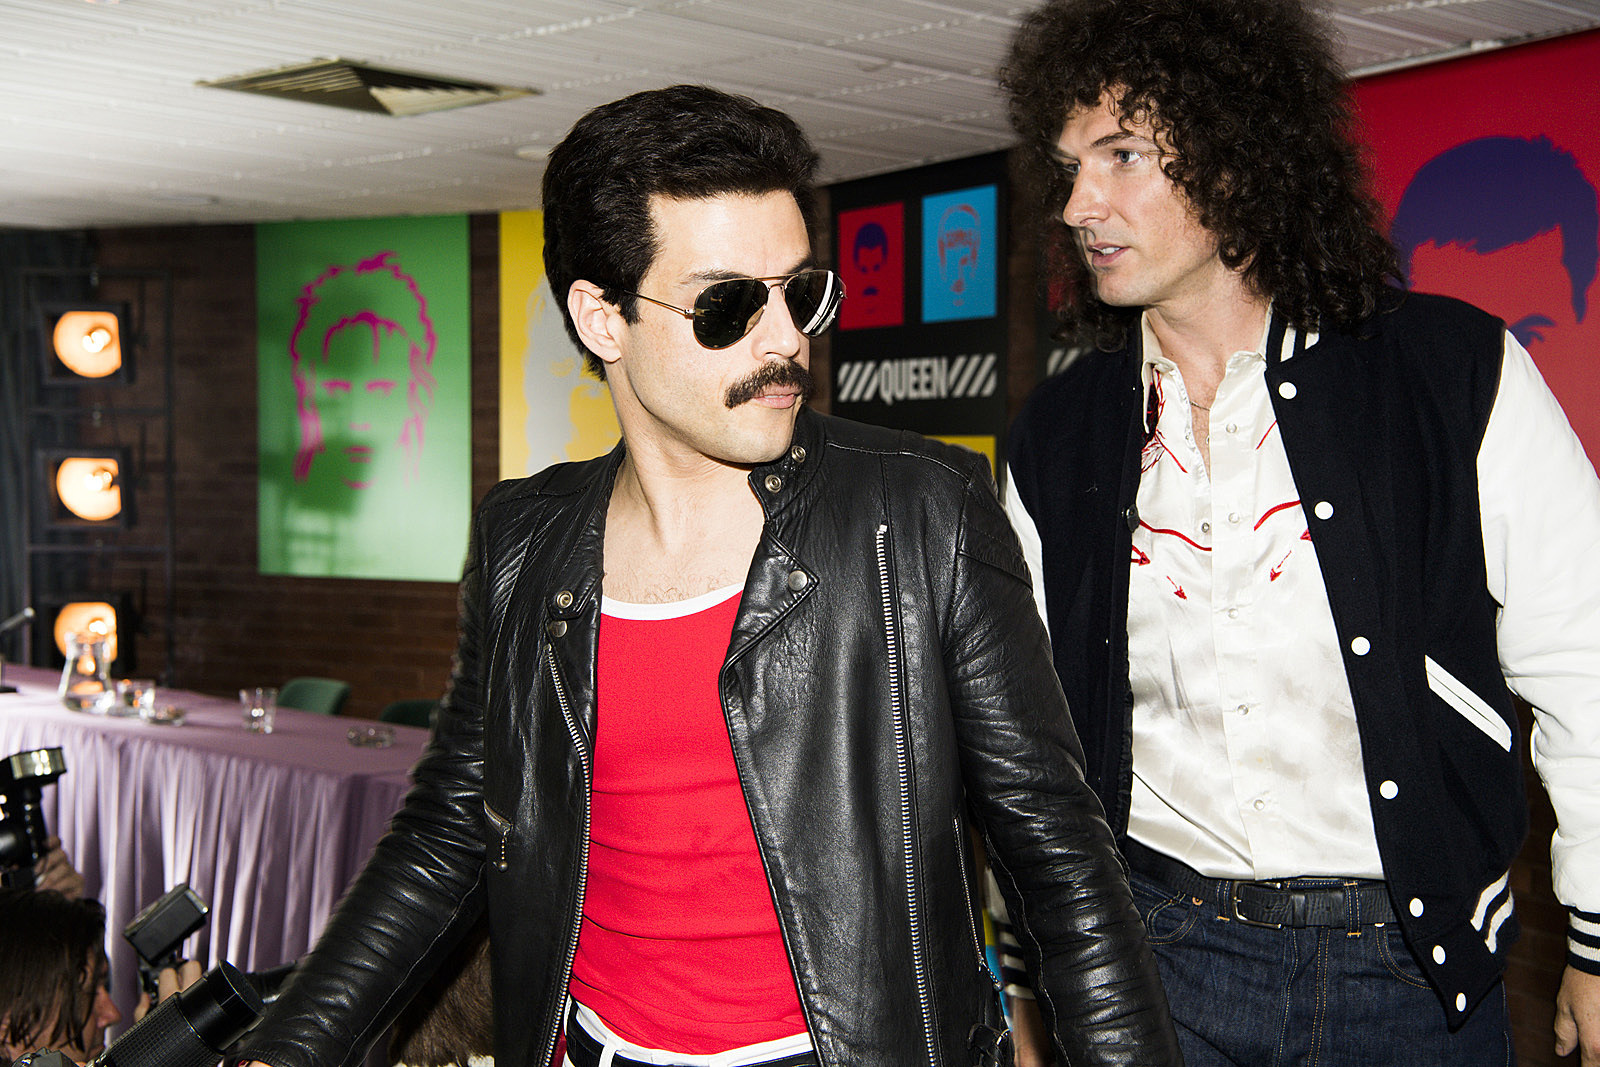 Pictures From Queen 'Bohemian Rhapsody' Film Emerge